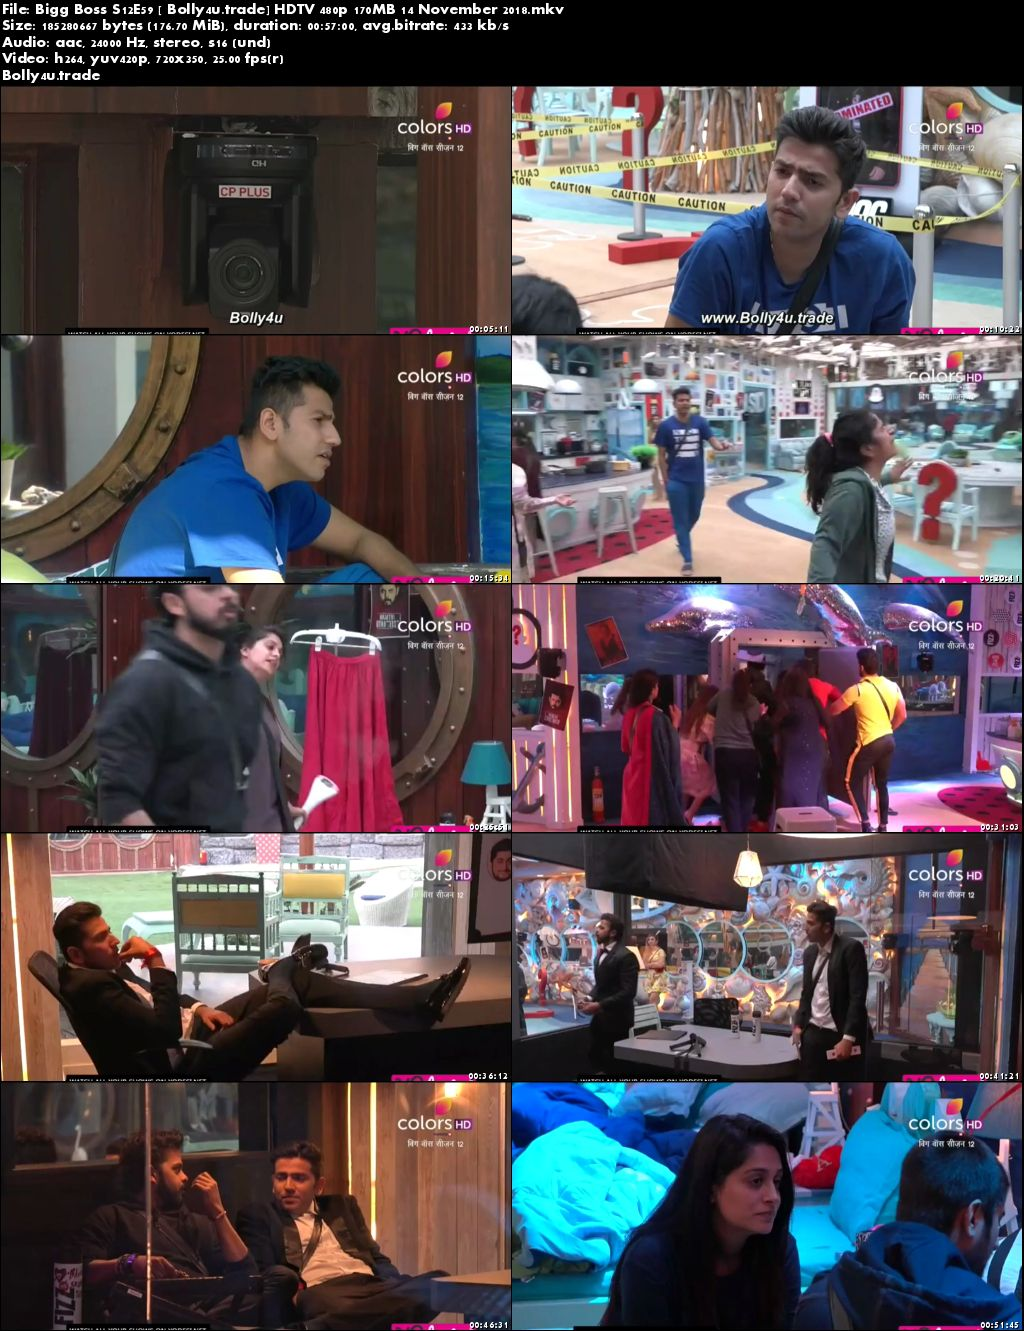 Bigg Boss S12E59 HDTV 480p 170MB 14 November 2018 Download